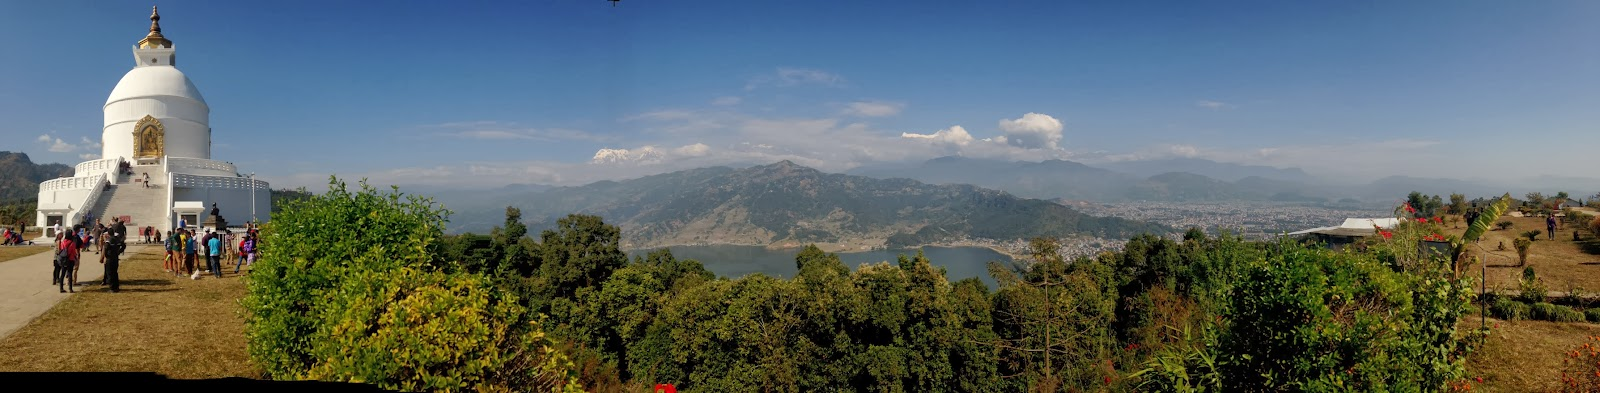 panoramic view from the world peace pagoda pokhara